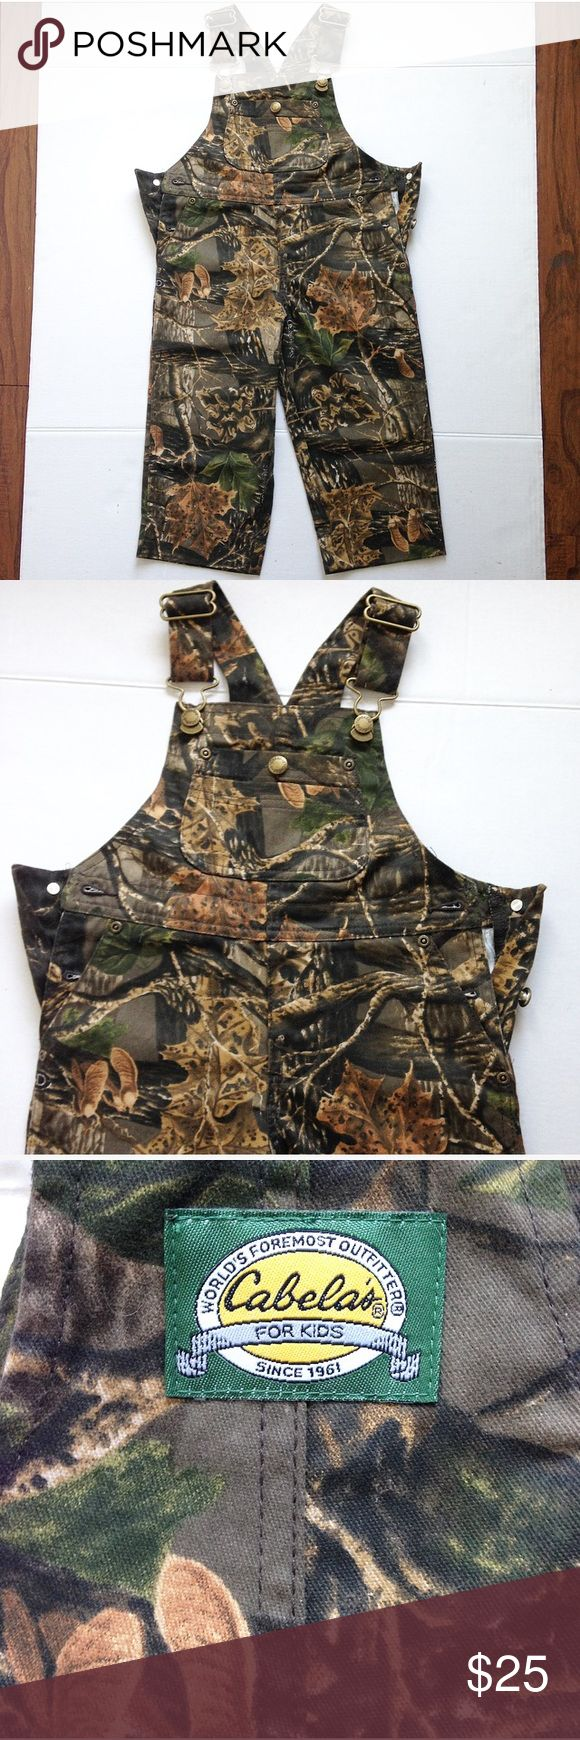 NWOT Kids size 2T camouflage overalls New without tags! Never worn! Cabelas kids! Size 2T camouflage jumper overalls Bottoms Jumpsuits & Rompers